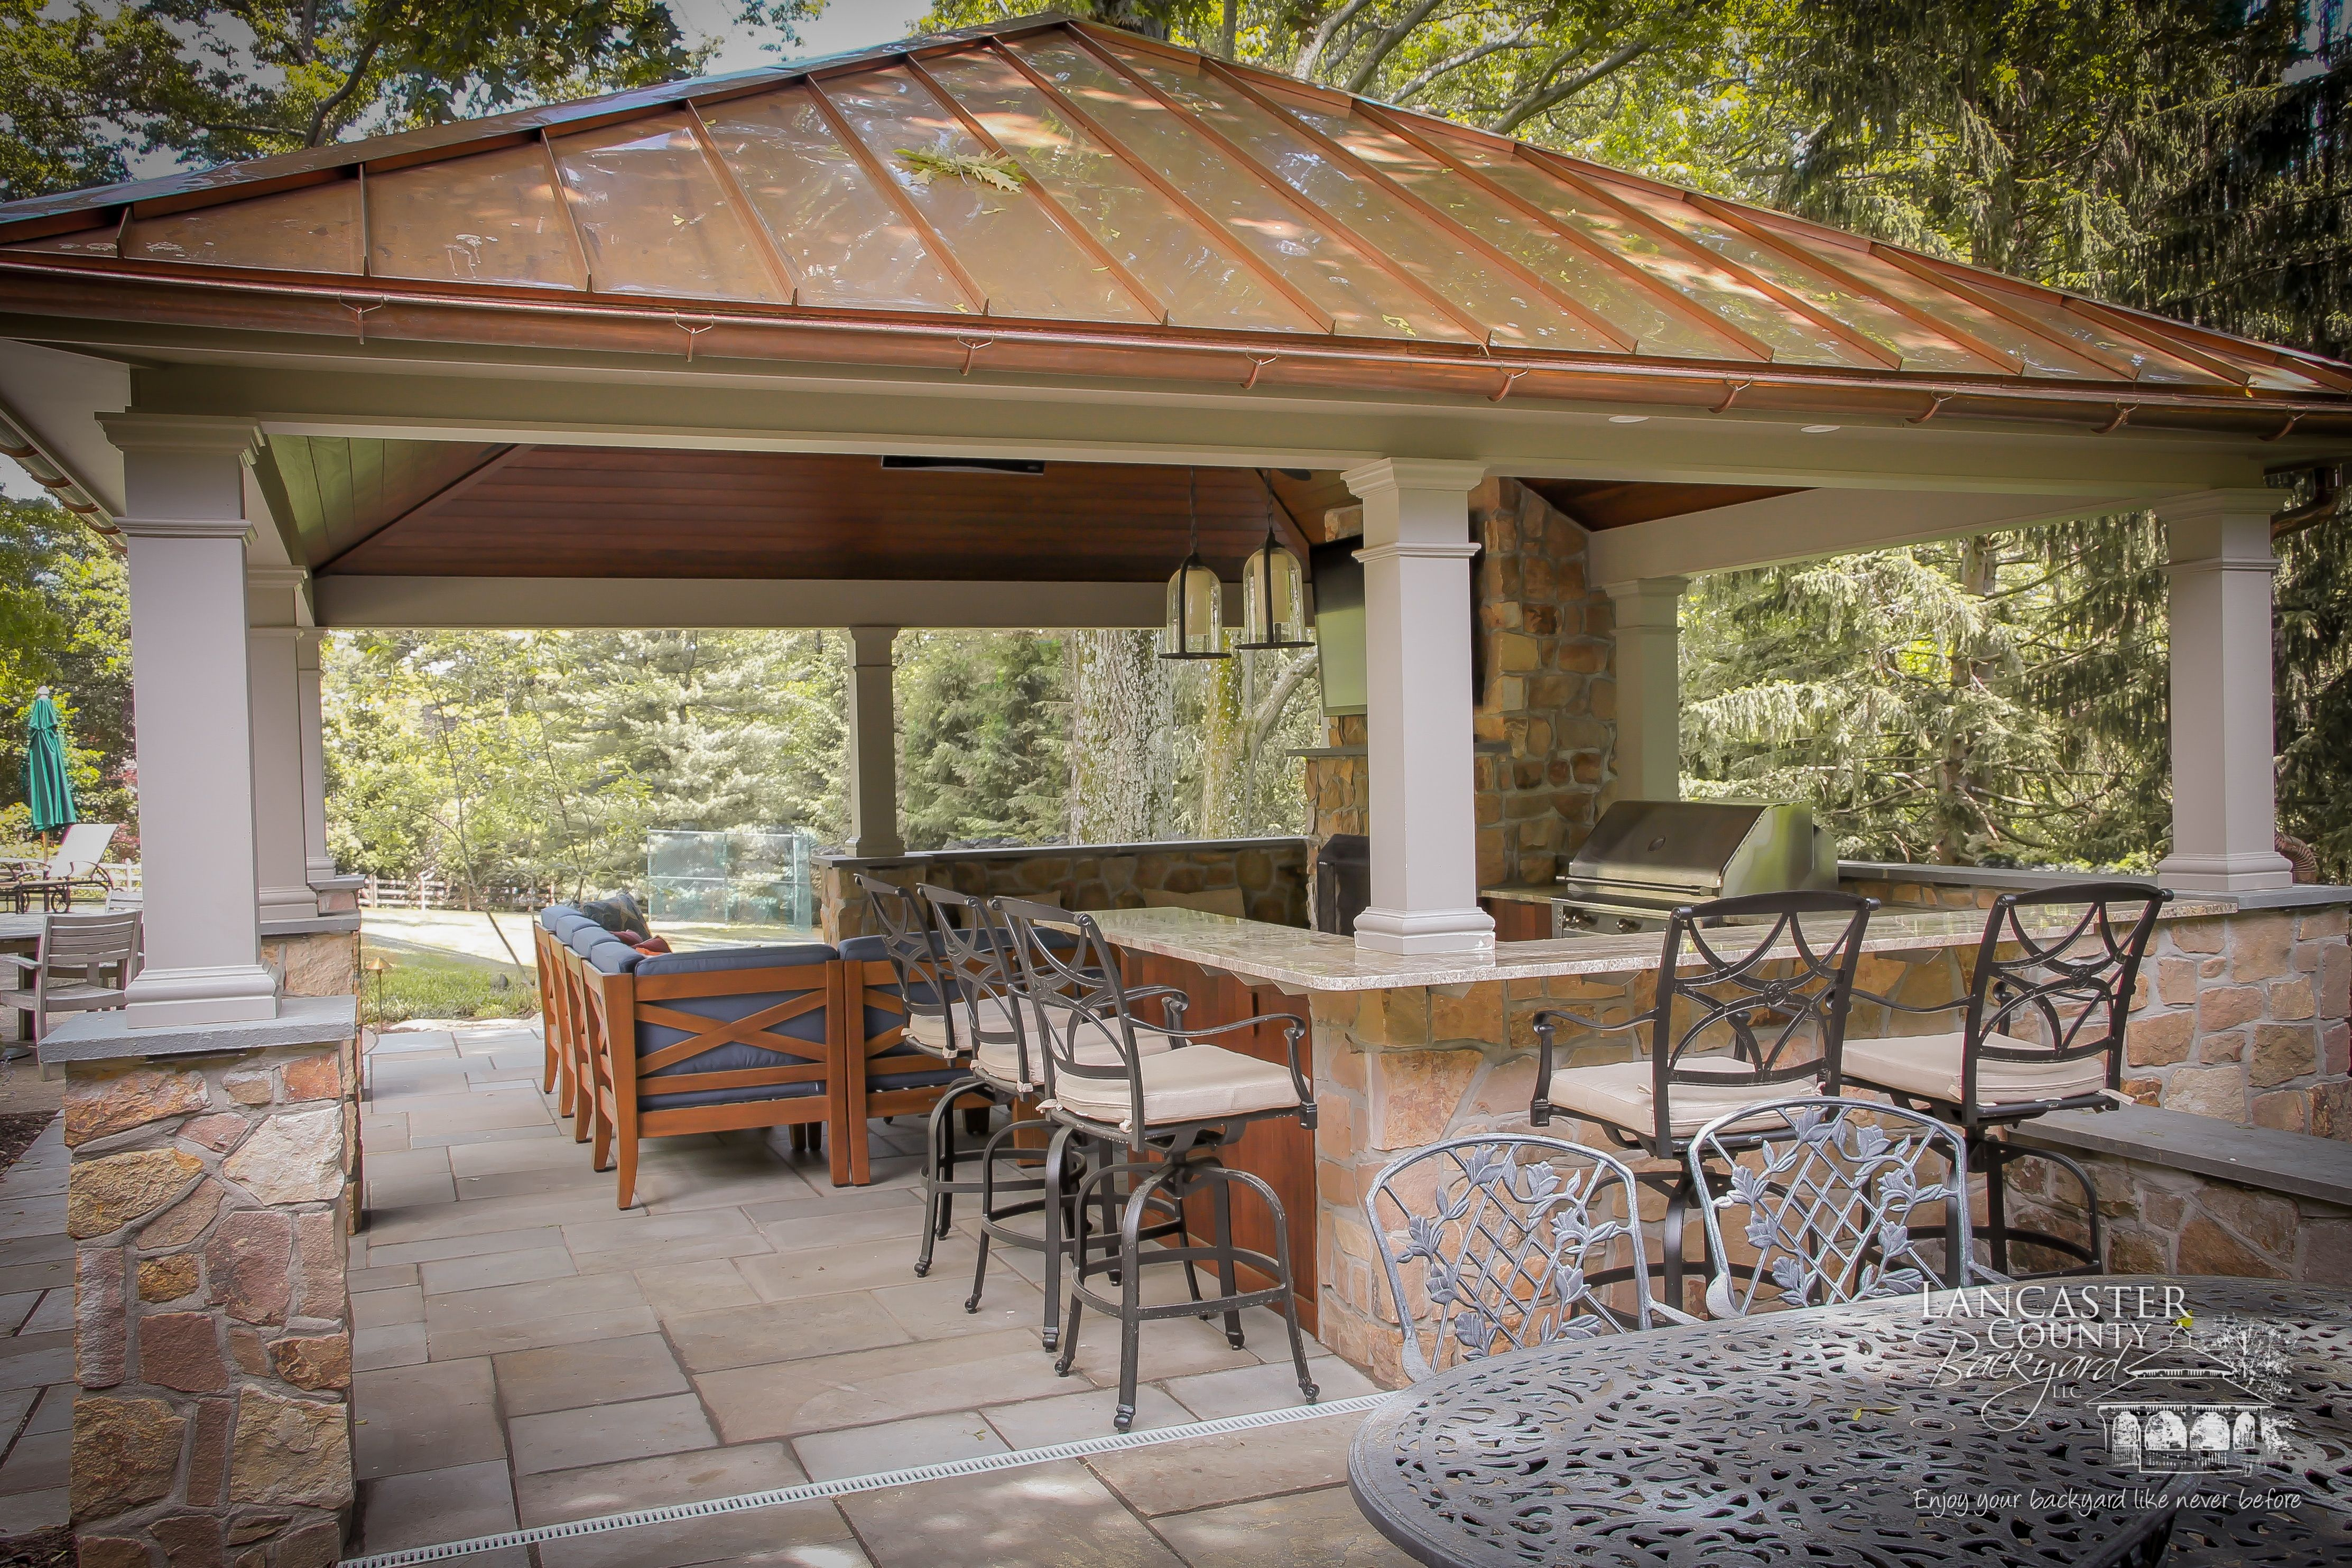 Gorgeous Outdoor Pavilion For High End Backyard Living Space with Backyard Pavilion Ideas